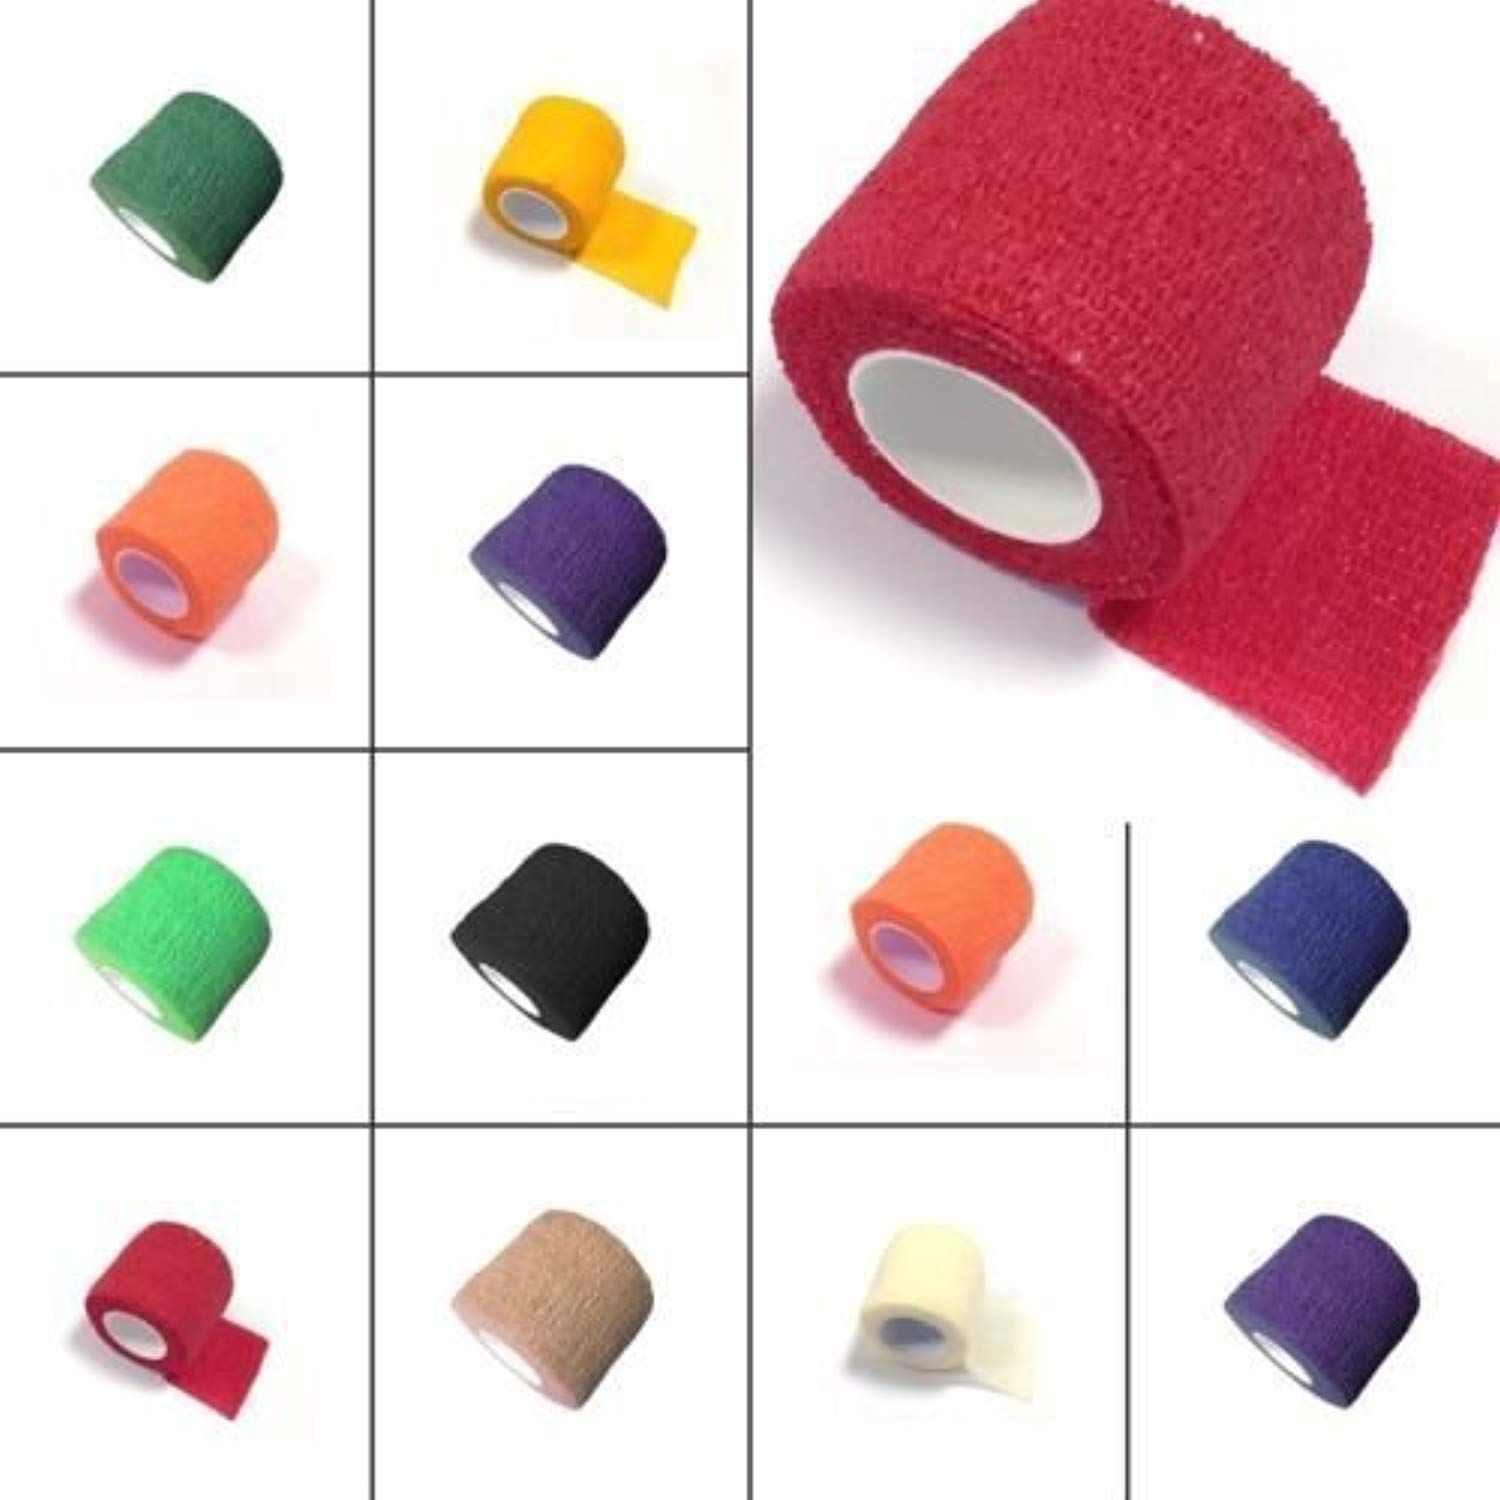 Pet Horse Dog Cat Vet Wound Elastic Cohesive Bandage Self